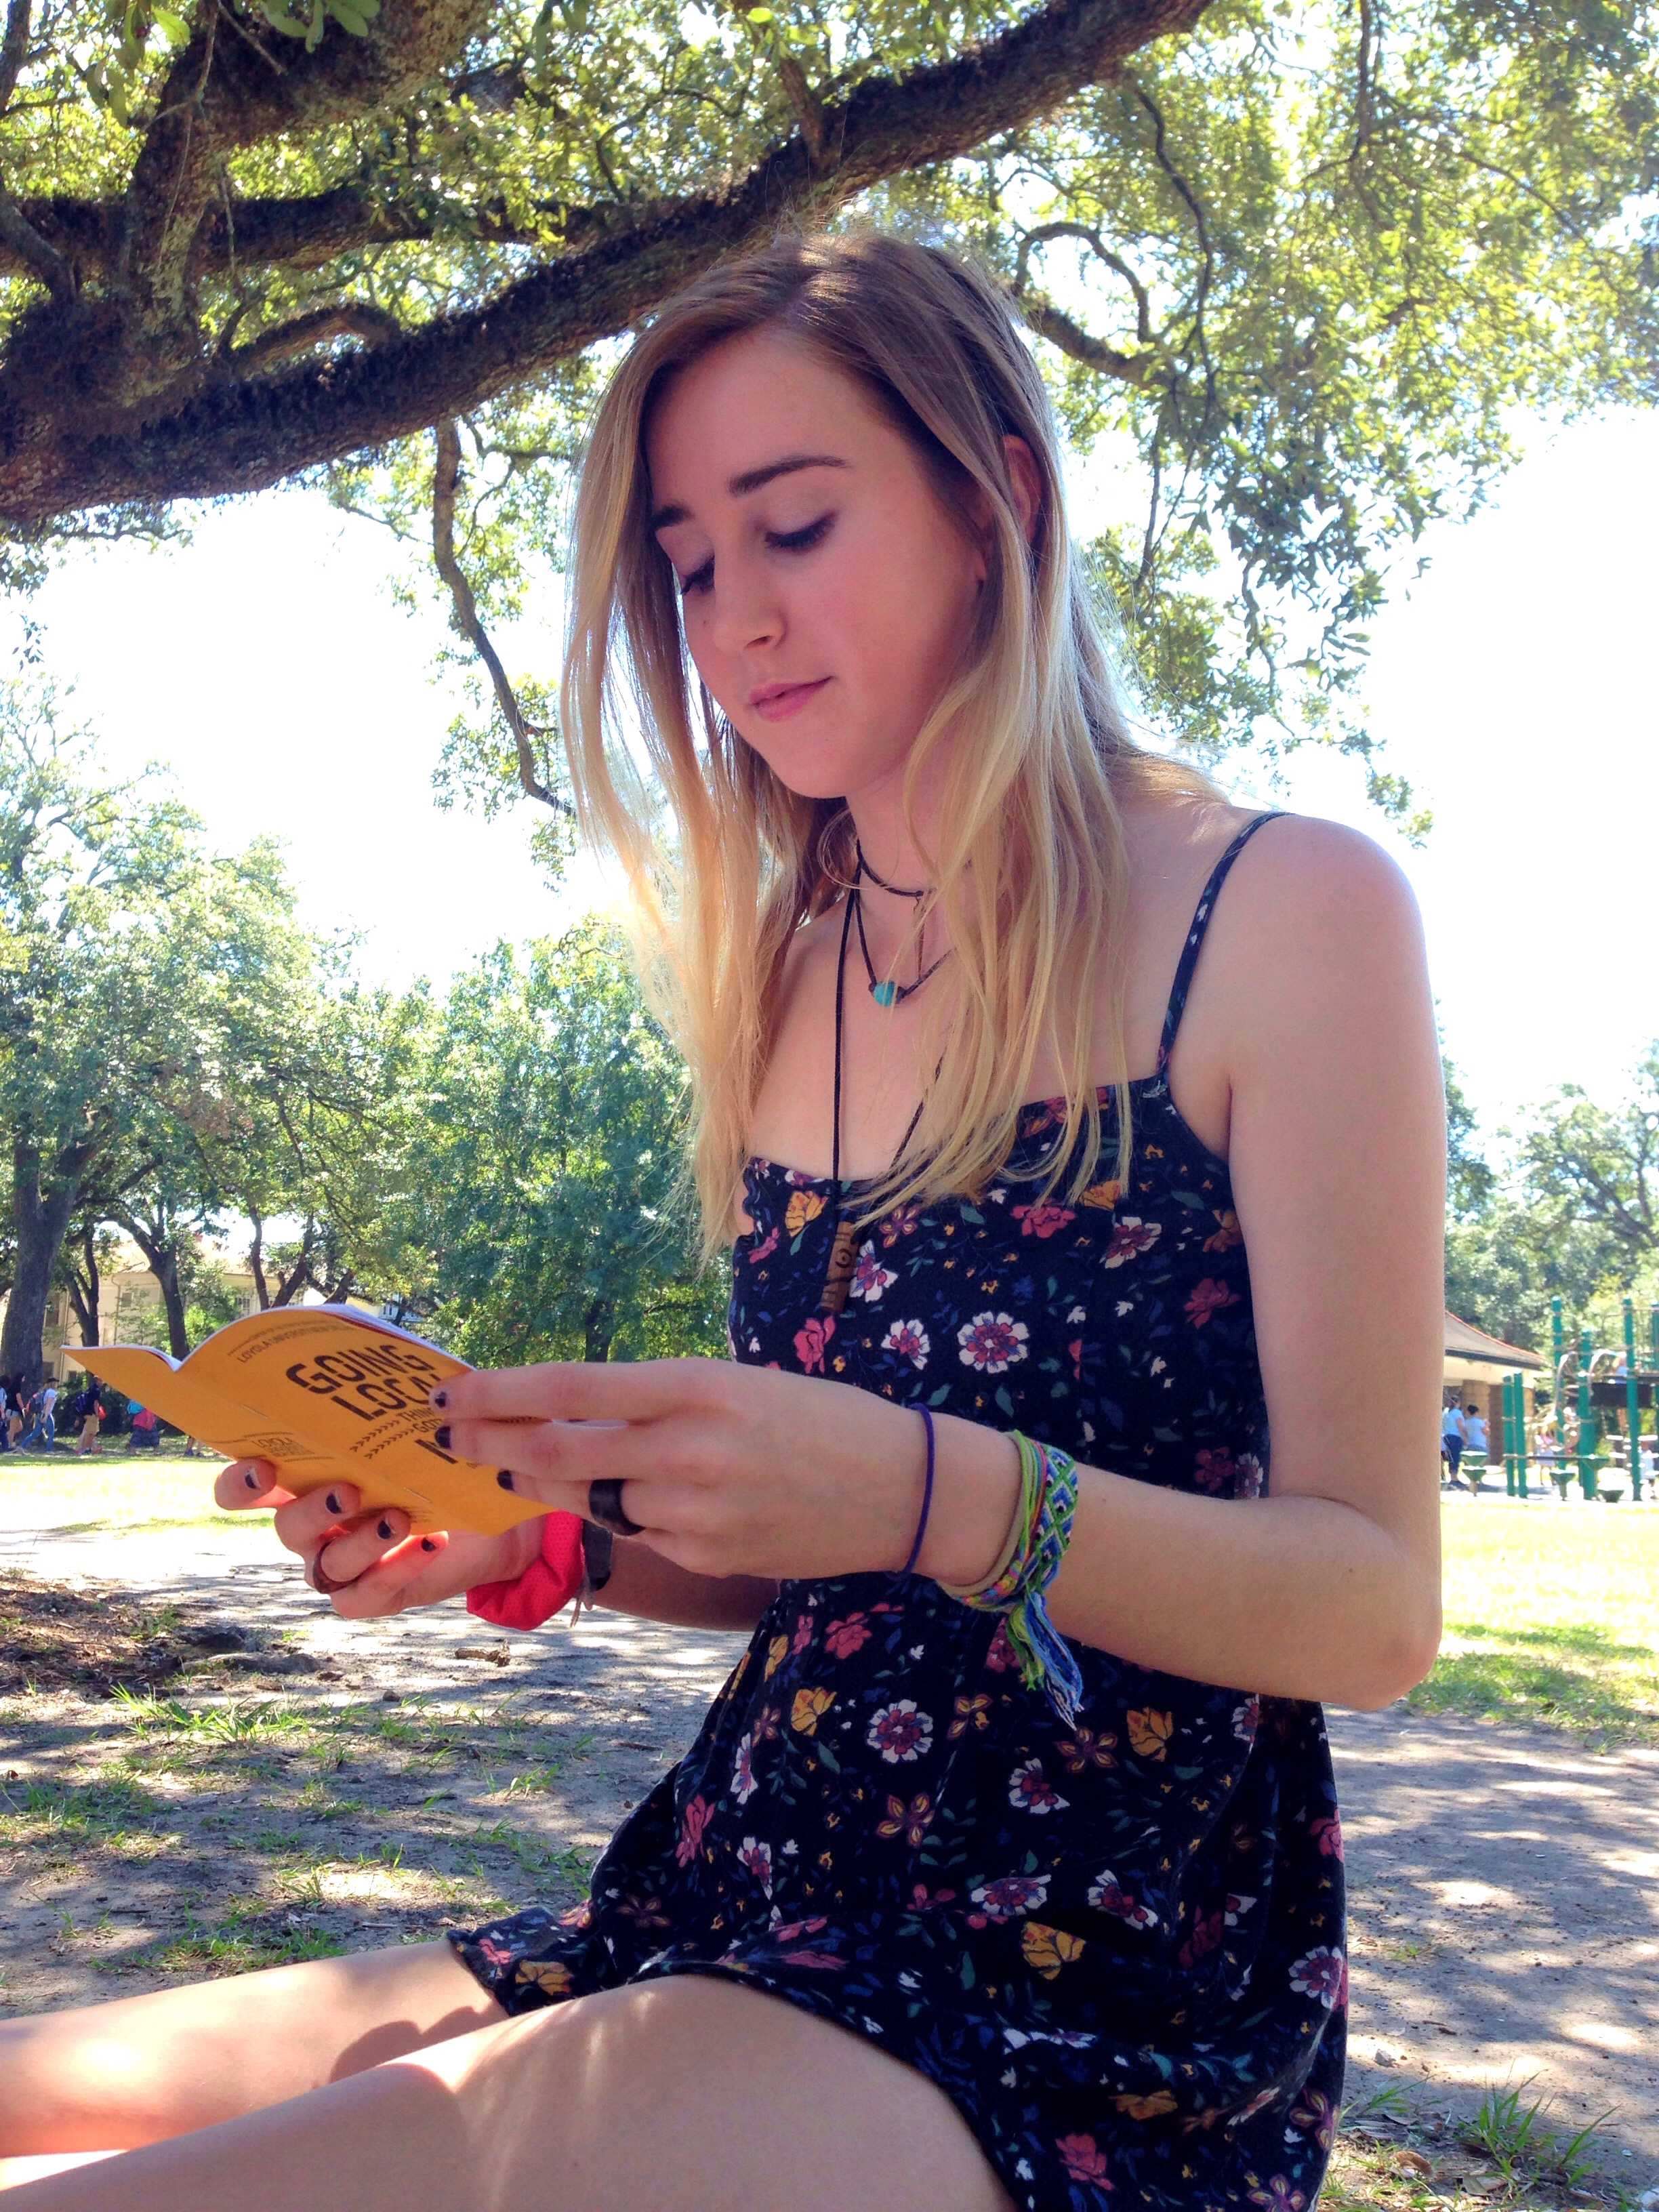 Charlotte Preuss, mass communication freshman, reads over the Nola Bucket List guidebook. The guidebook is intended for newcomers who are looking to explore the city. Photo credit: Zayn Abidin